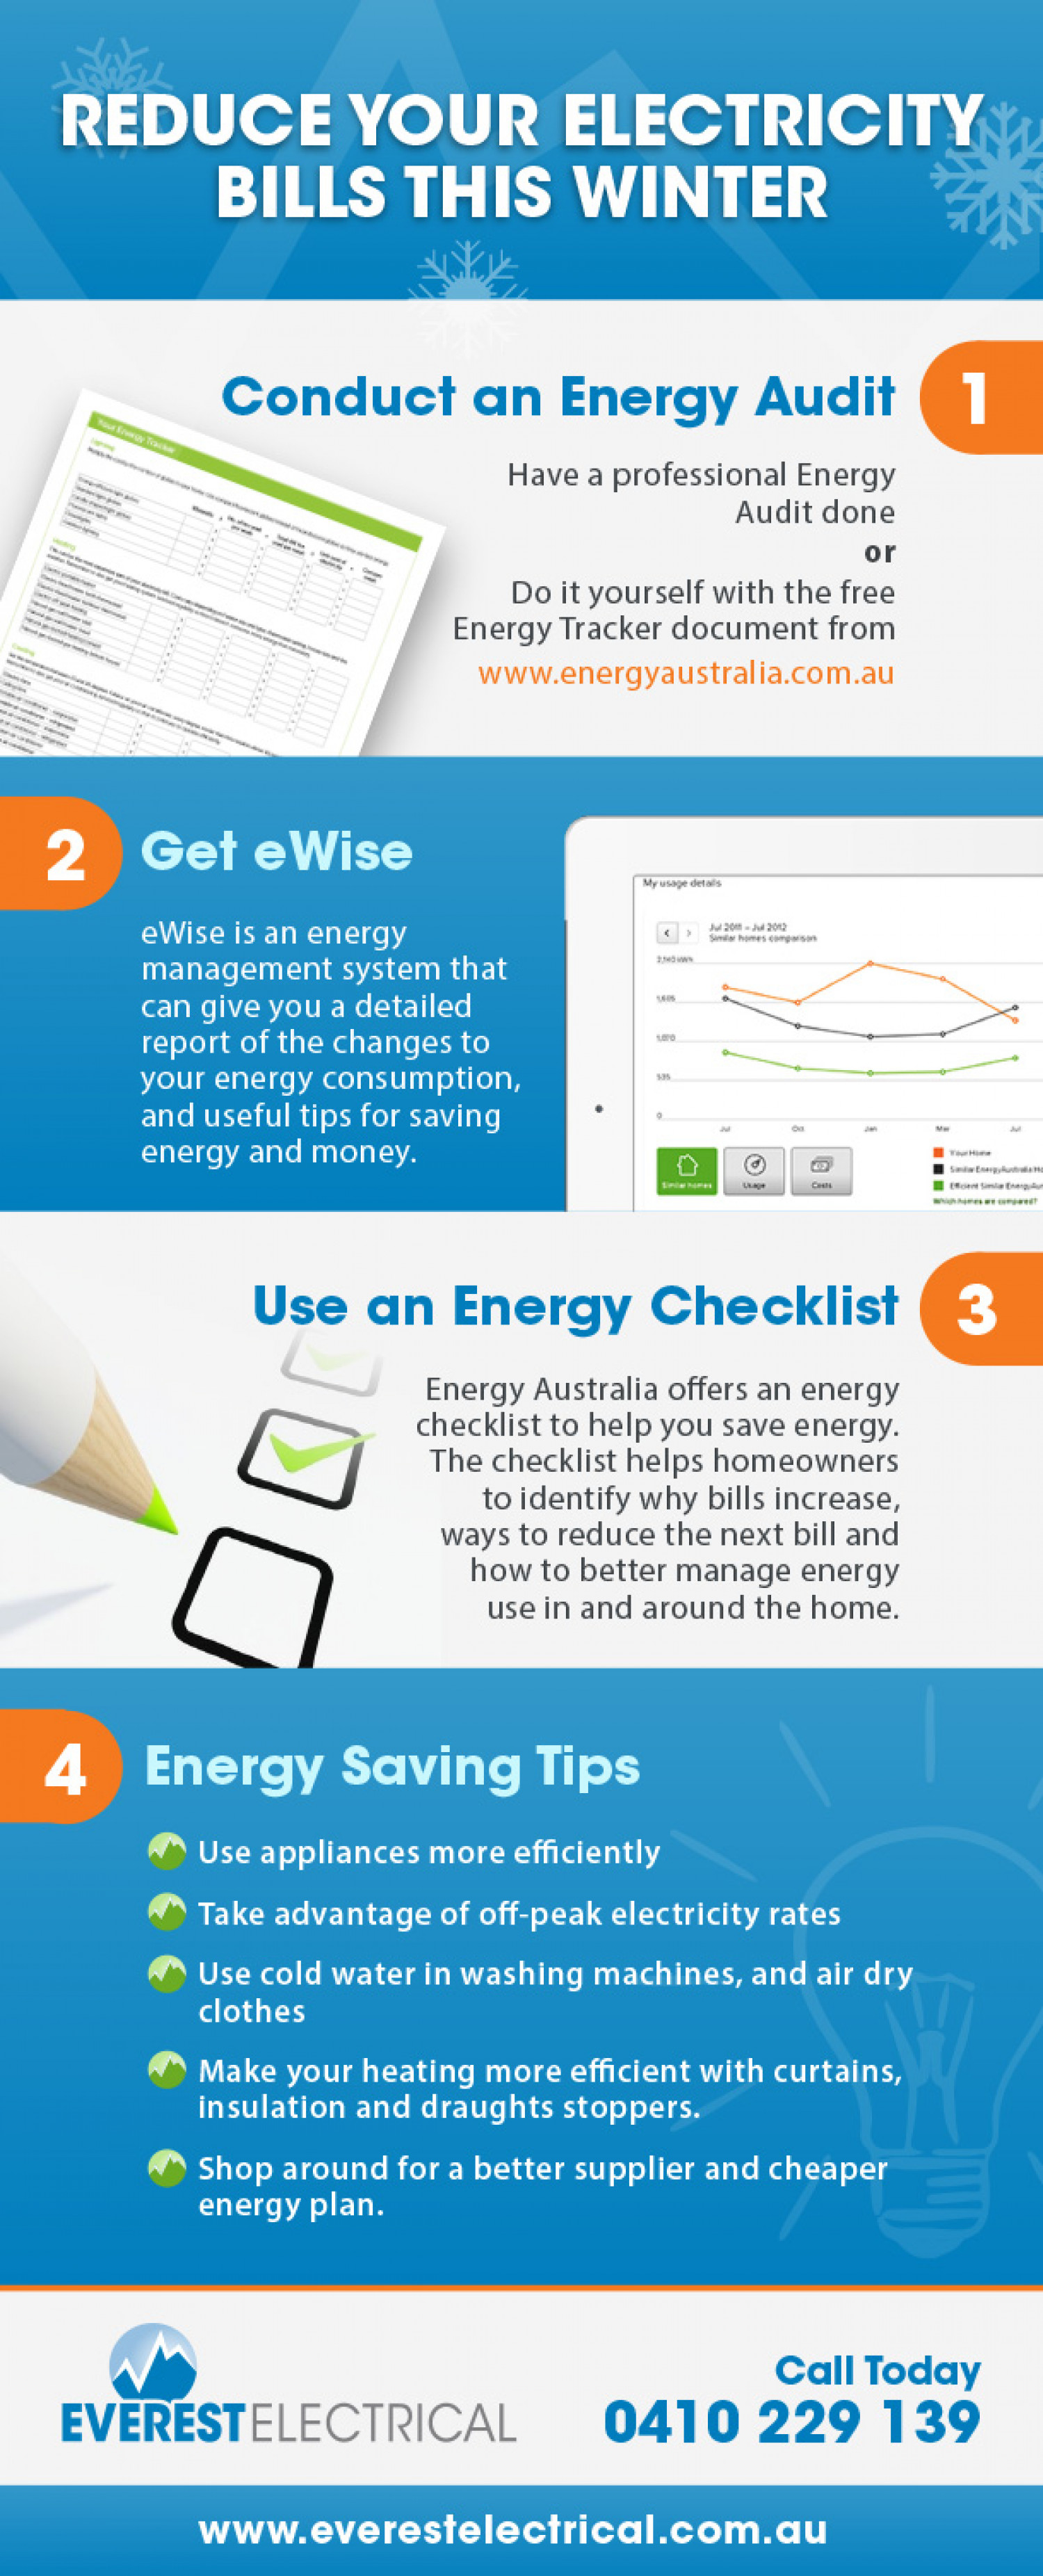 Reduce Your Electricity Bills This Winter Infographic